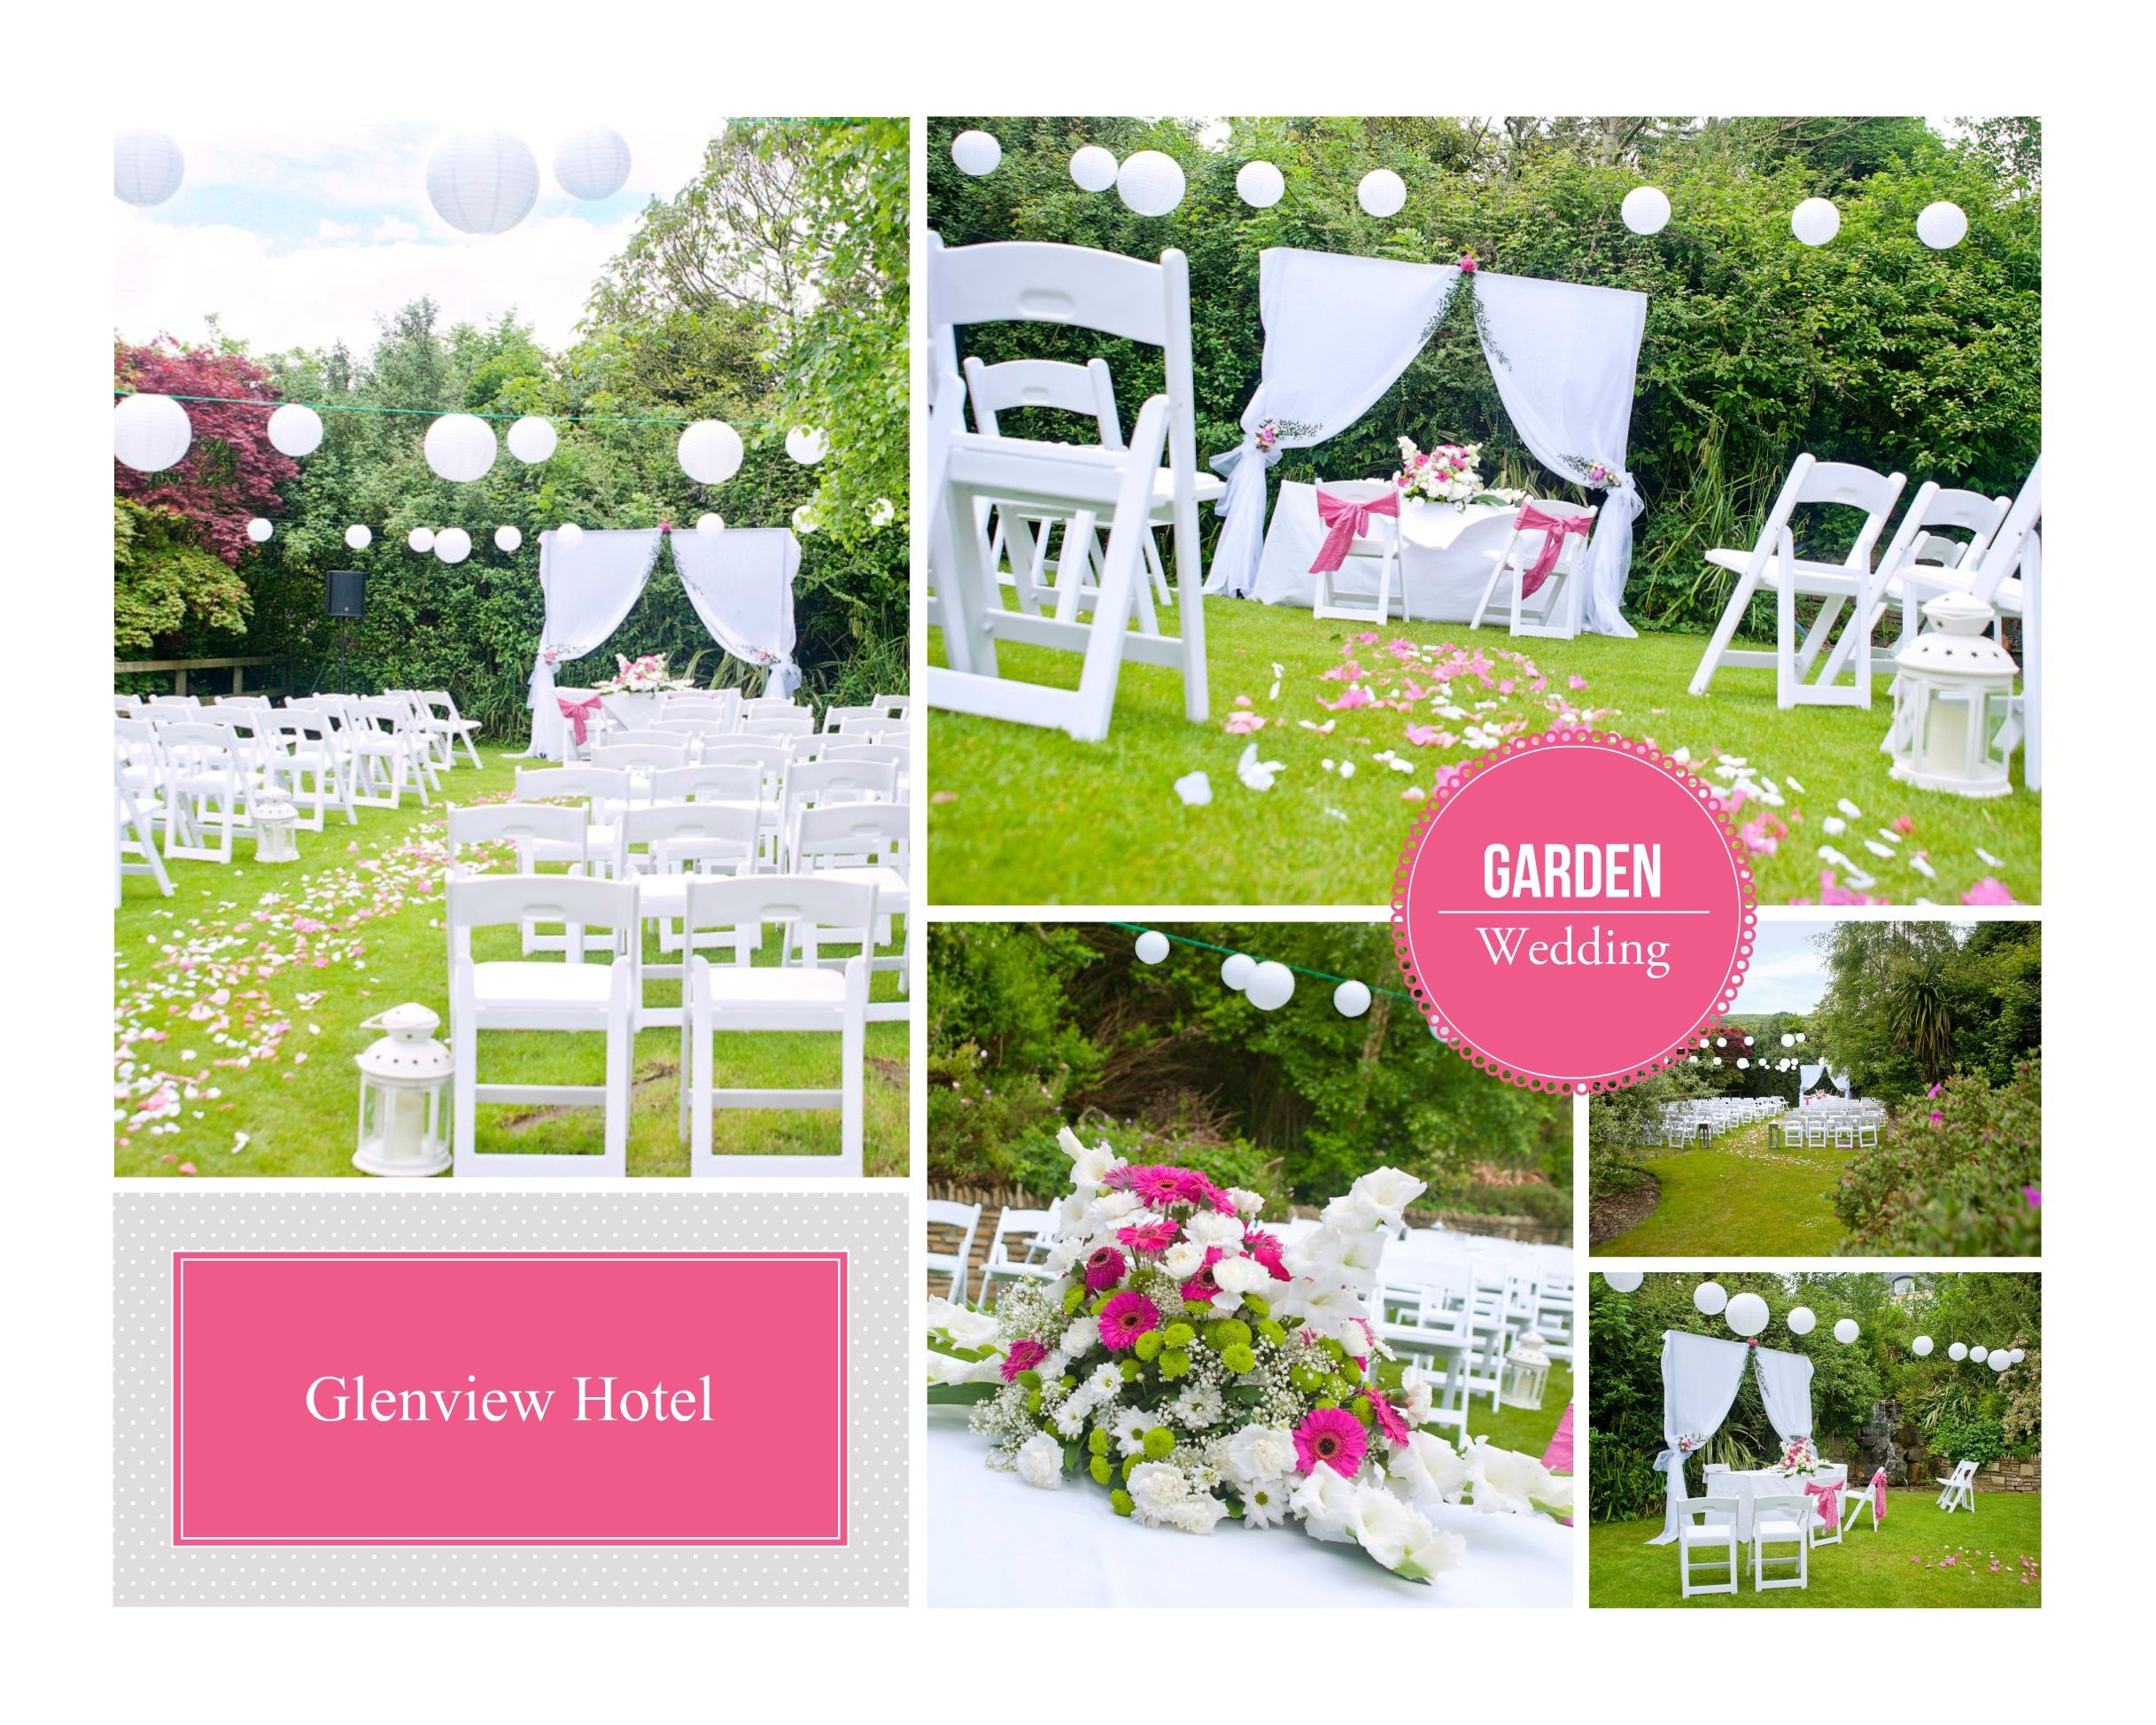 Outdoor Civil Ceremony At The Glenview Hotel